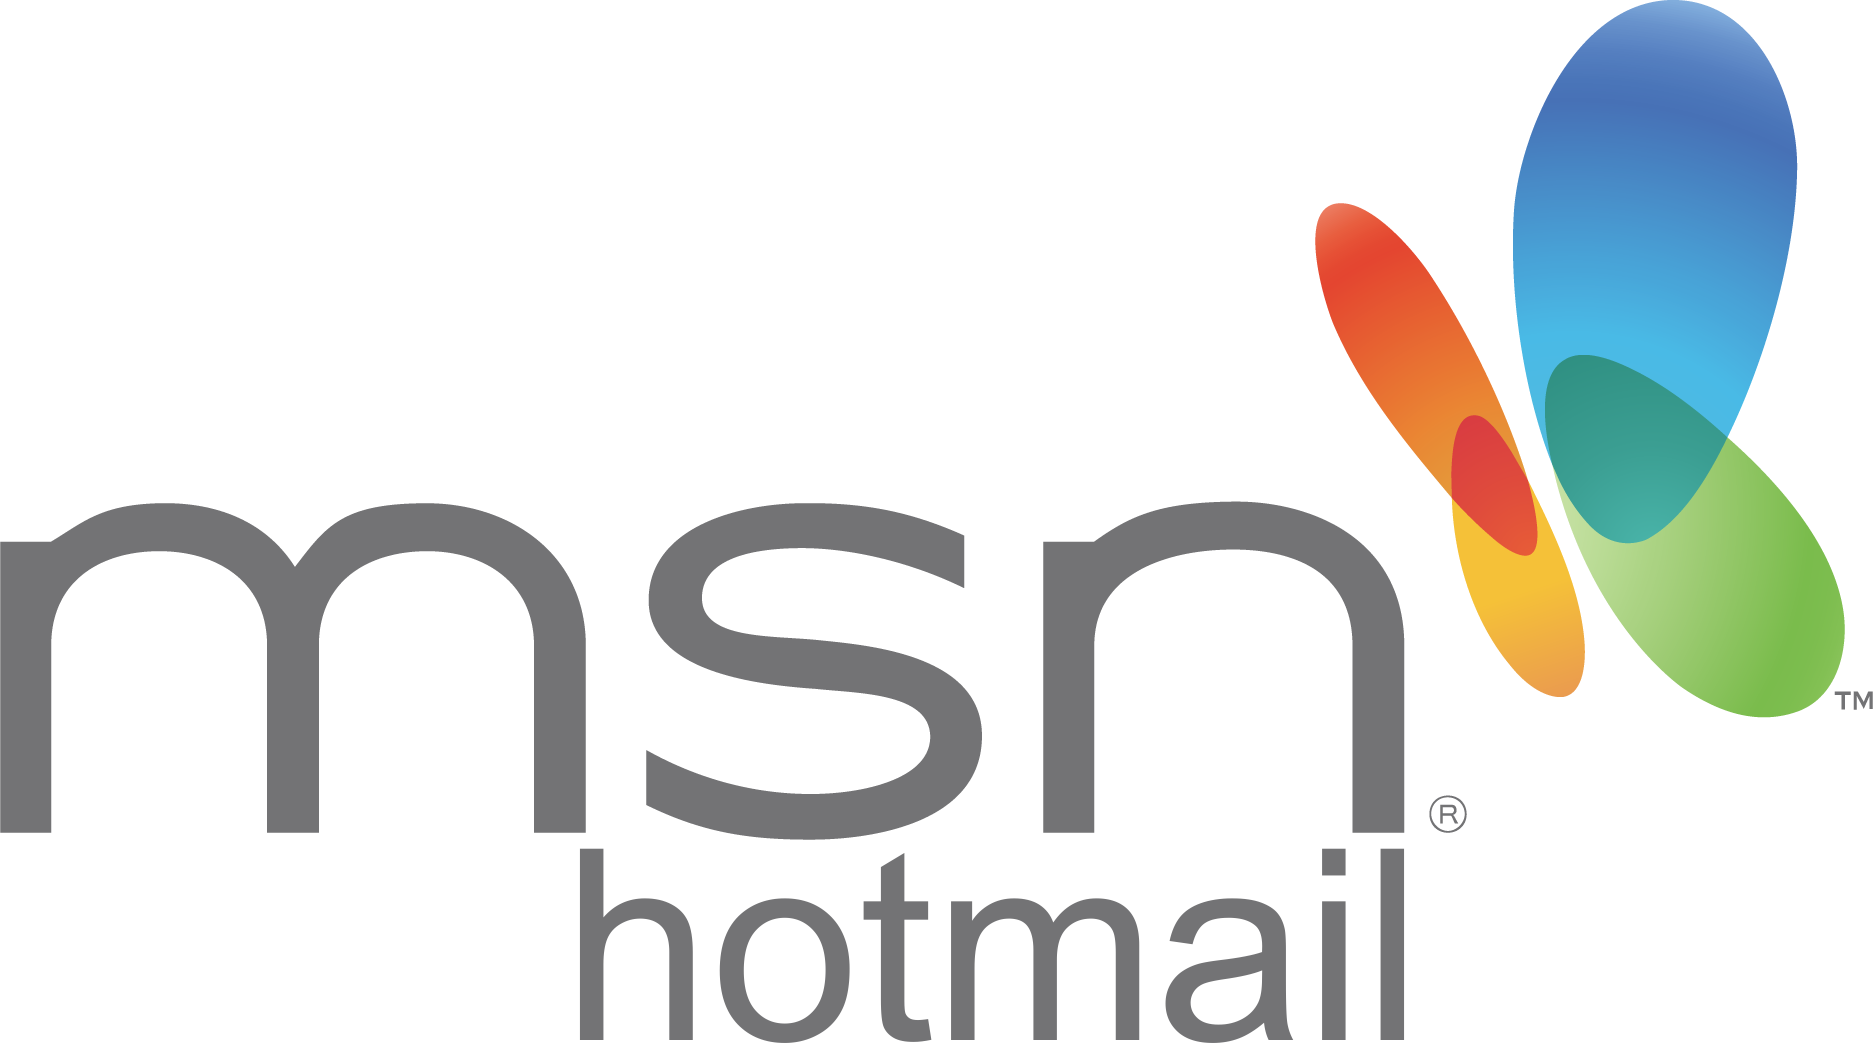 An Msn Hotmail Sign In Used To Be Quite The Status Symbol For Years